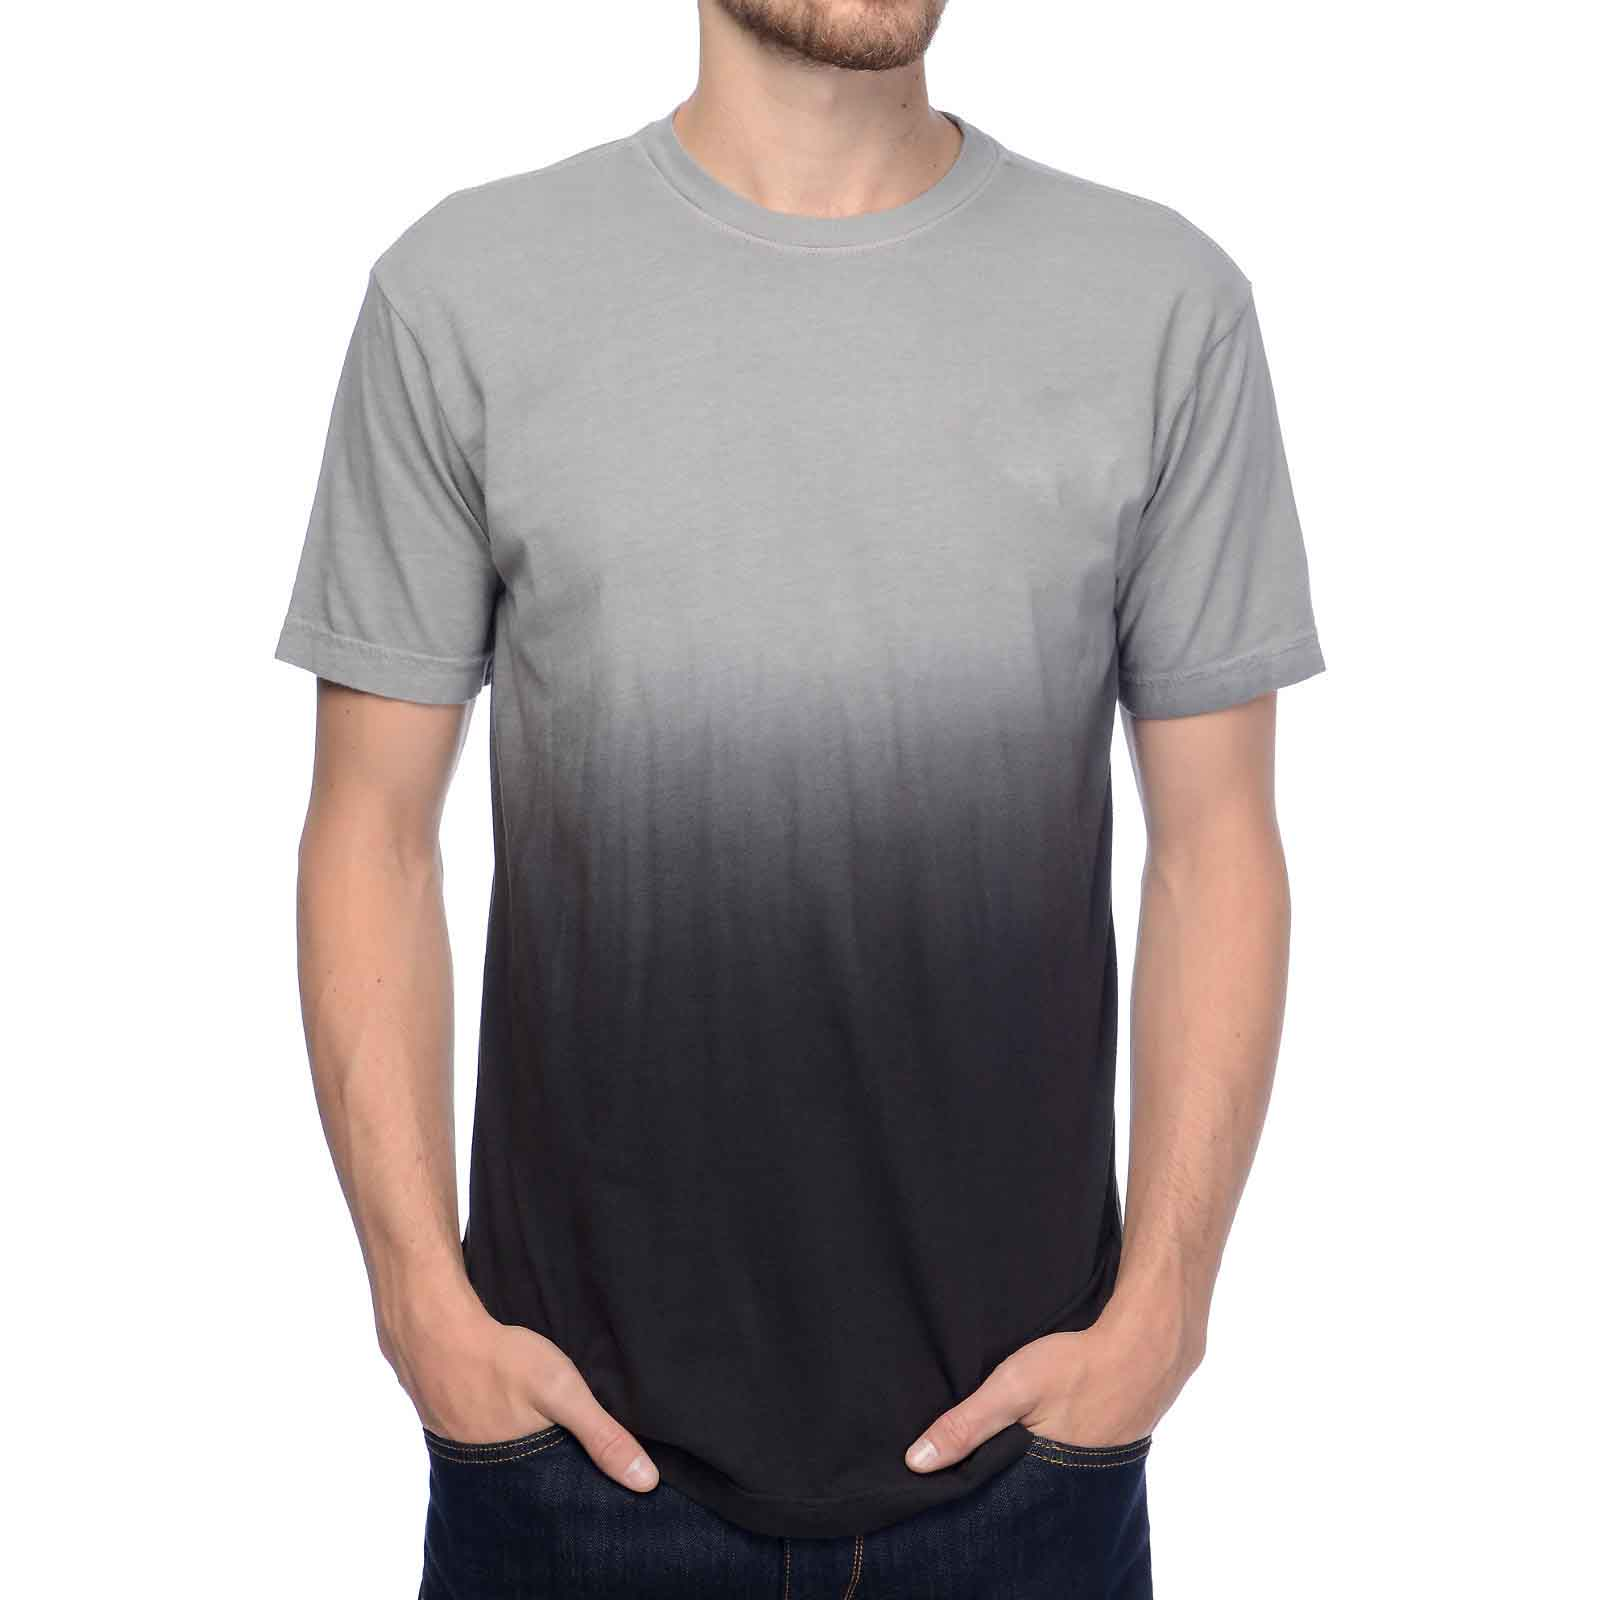 Custom Cut and Sew T-shirts Manufacturers and Contractors